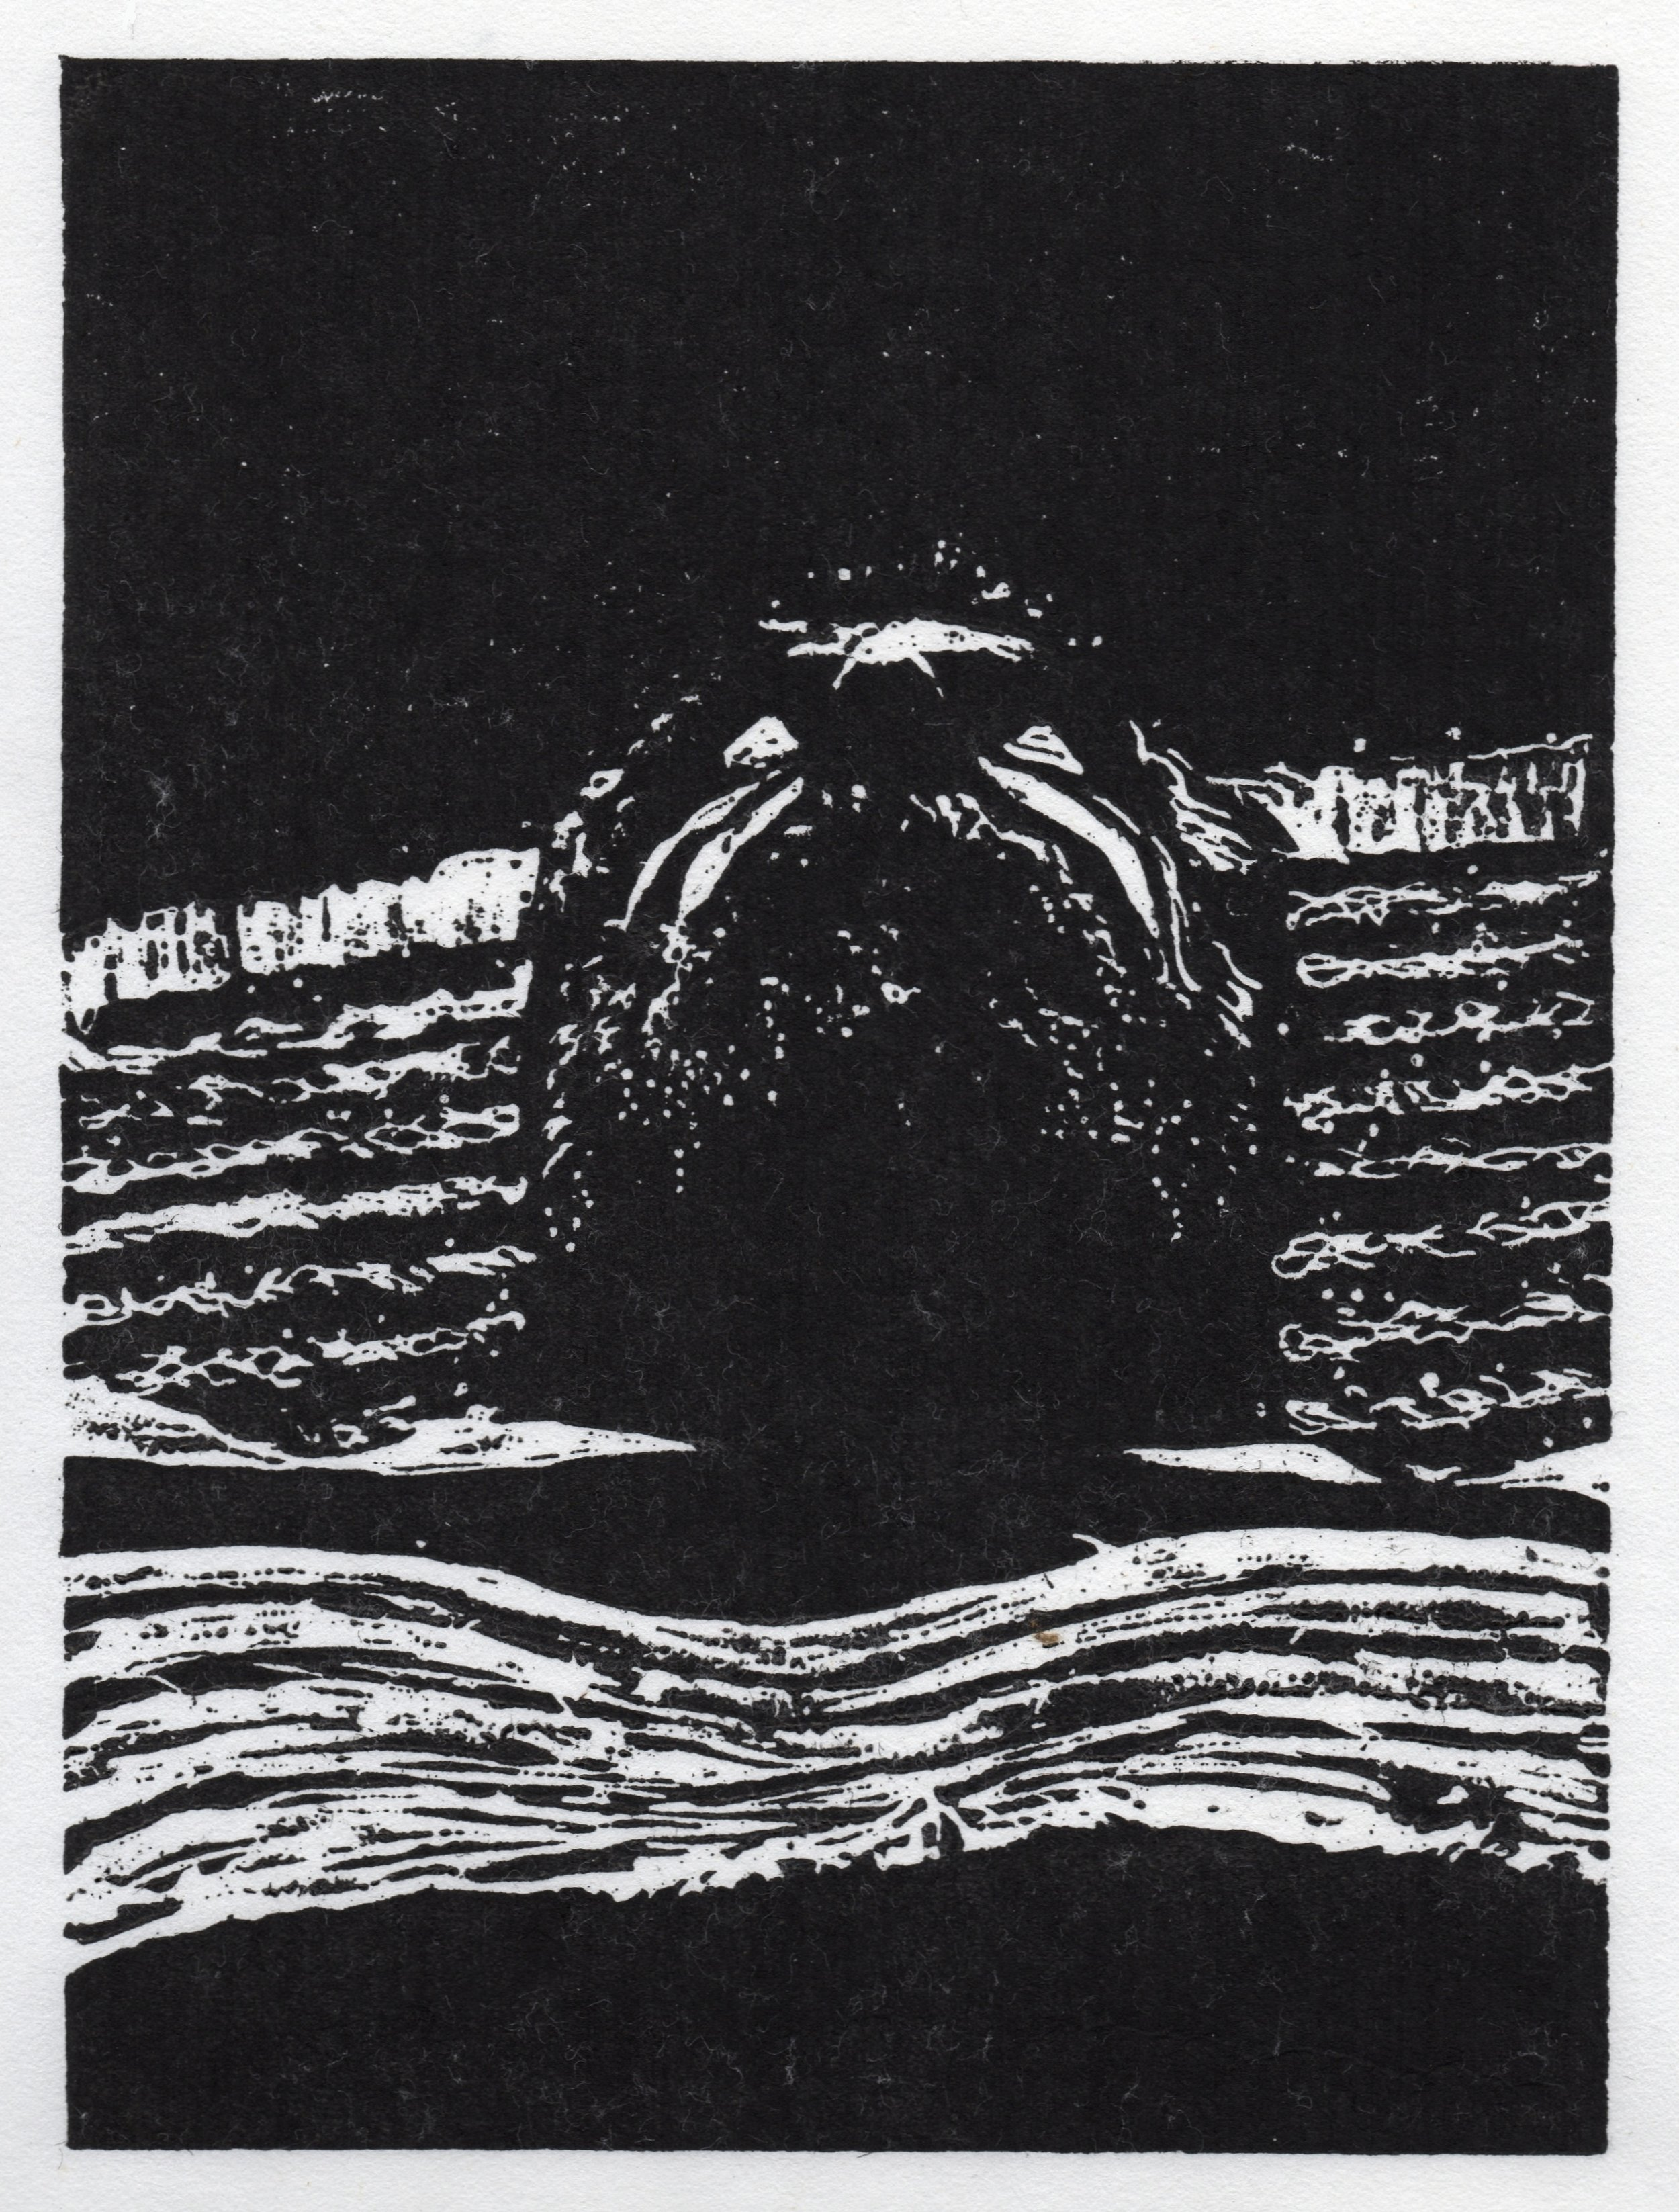 Patriot Act_Stars_woodcut @11x14.jpg